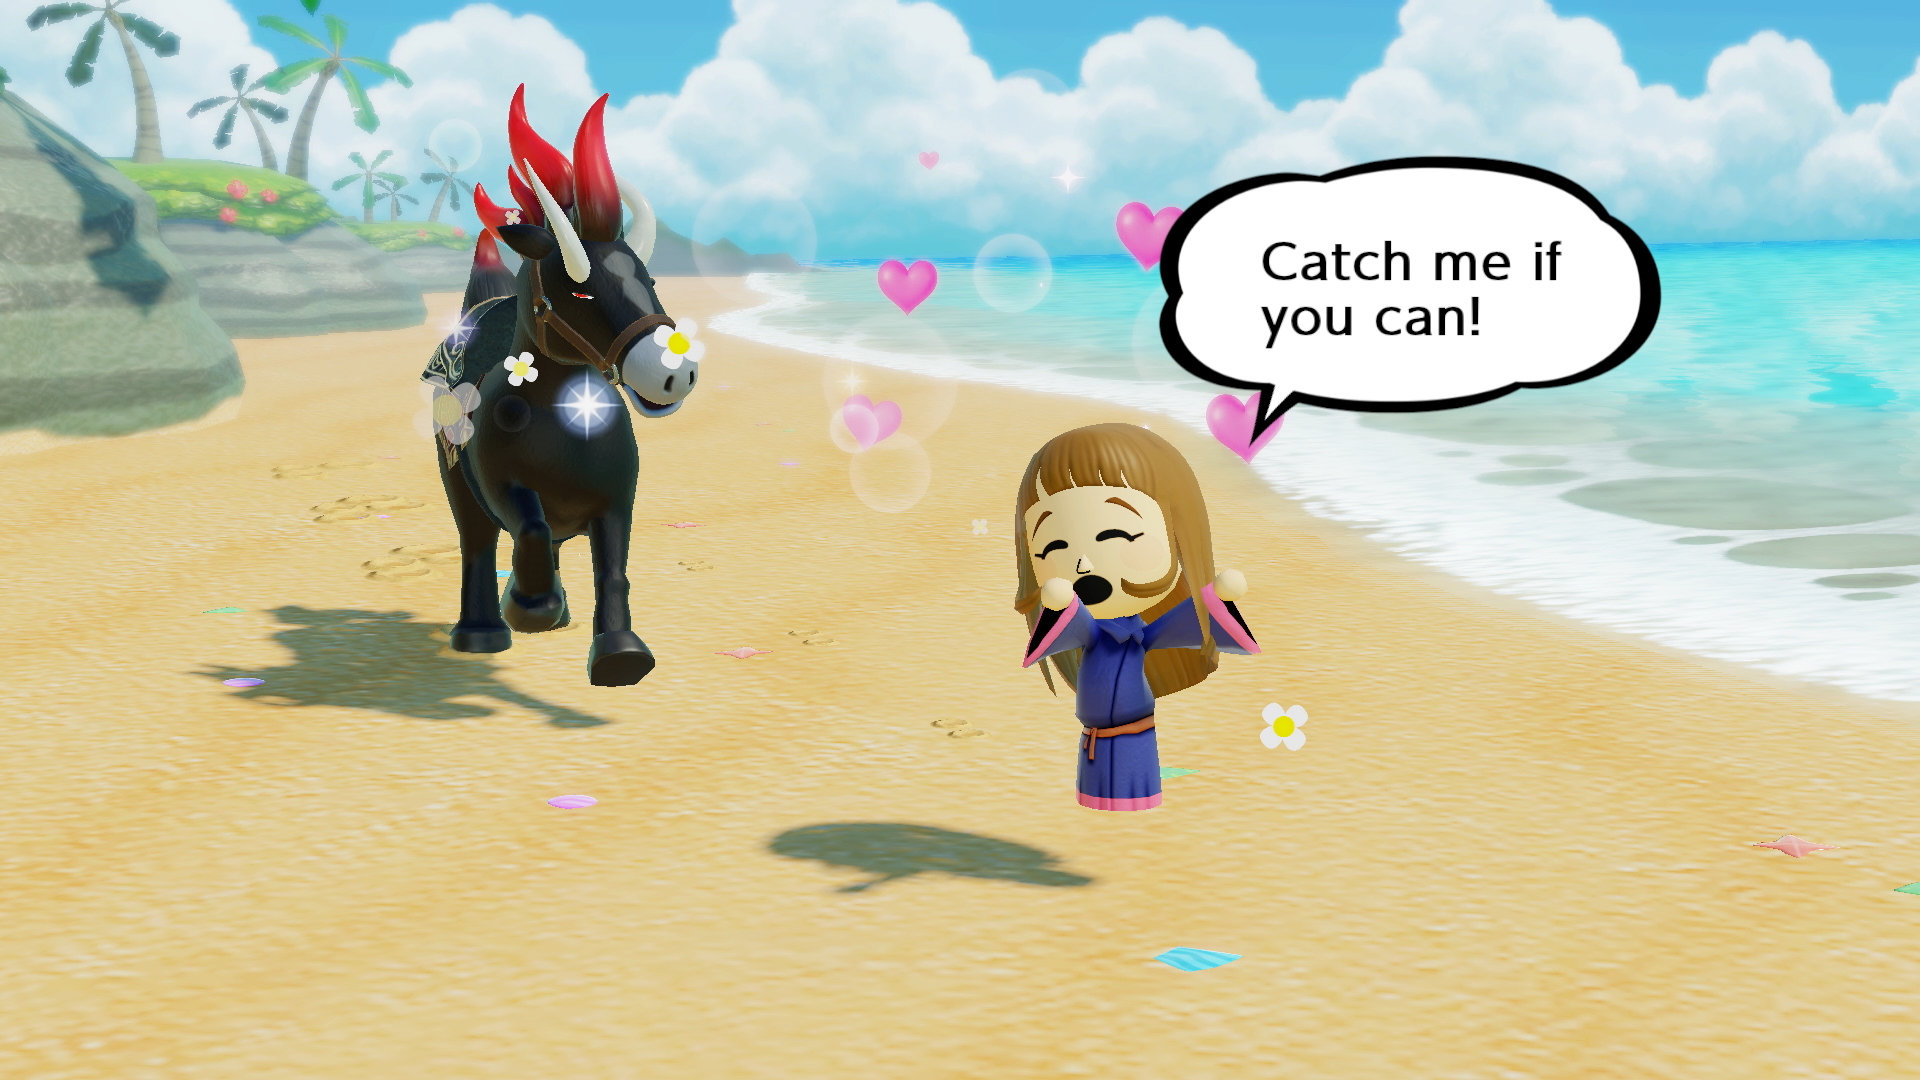 Miitopia screenshot of a girl in a kimono running from a black horse on a beach with hearts swirling around her head.